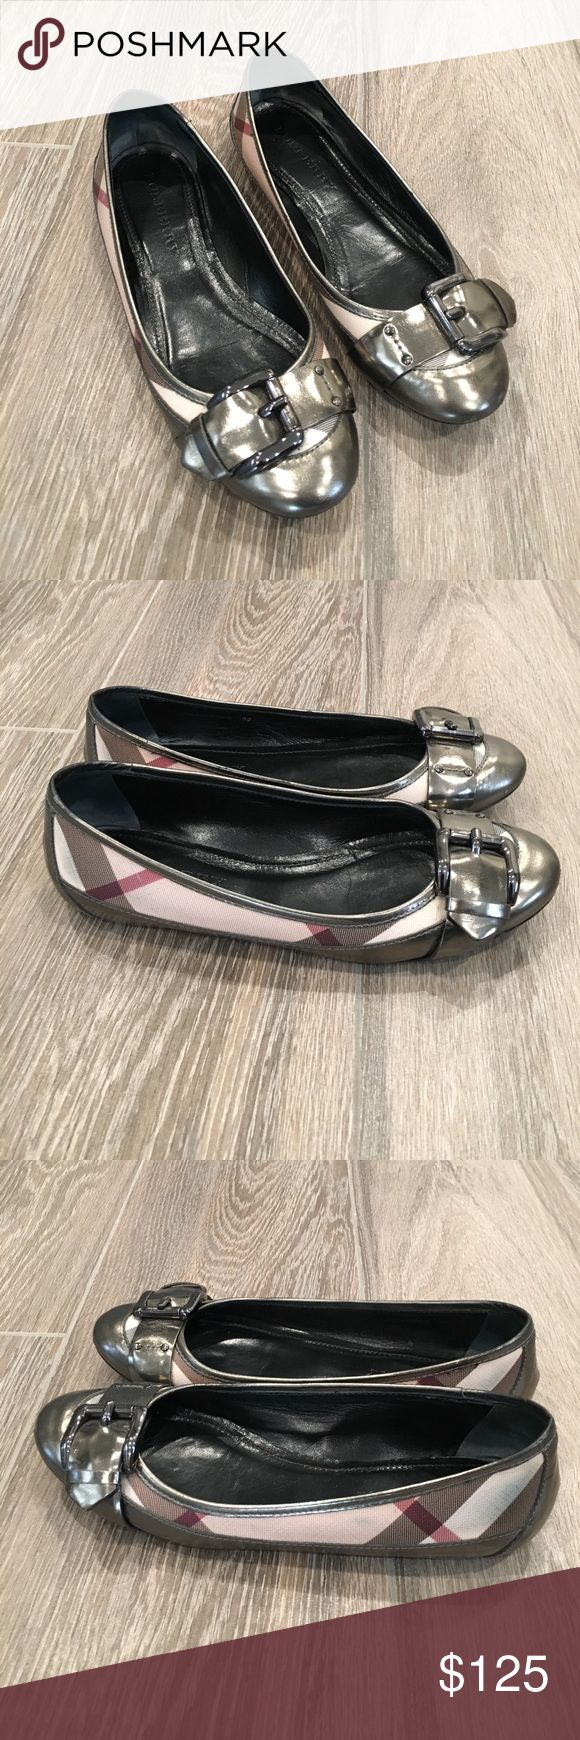 Authentic Burberry Flats Authentic Burberry flats with buckle on front and signature Burberry check details. Non slip rubber soles.  Made in Italy. EUR 38. Please note minor scuffs and blue marks from jeans rubbing on to the shoe. Overall VGUC. Original box and dust bag included. Burberry Shoes Flats & Loafers